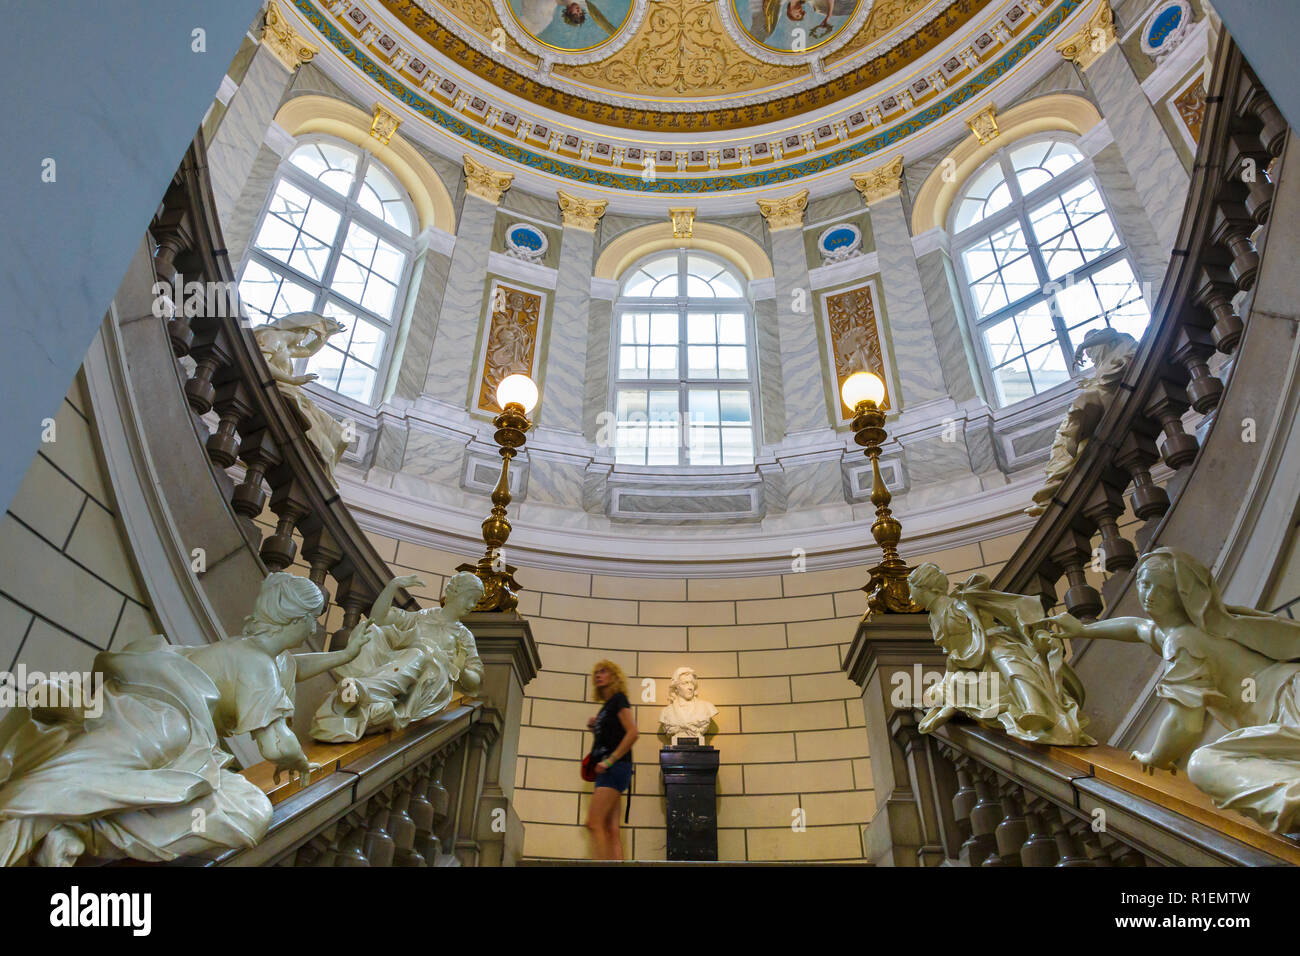 Staircase and ceiling. National Museum of Slovenia. Ljubljana. Slovenia, Europe. - Stock Image